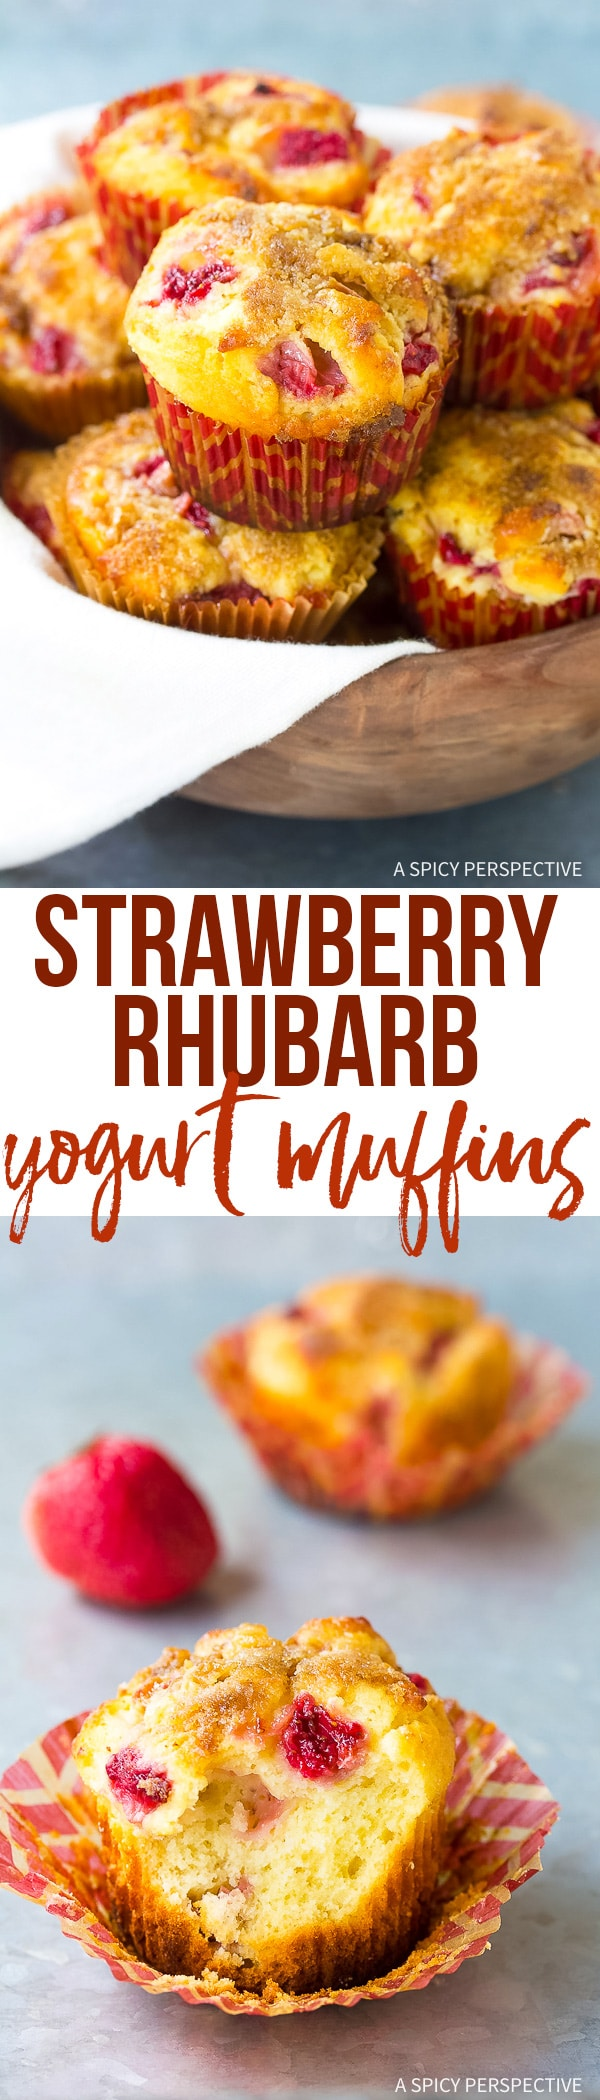 The Best Strawberry Rhubarb Yogurt Muffins Recipe